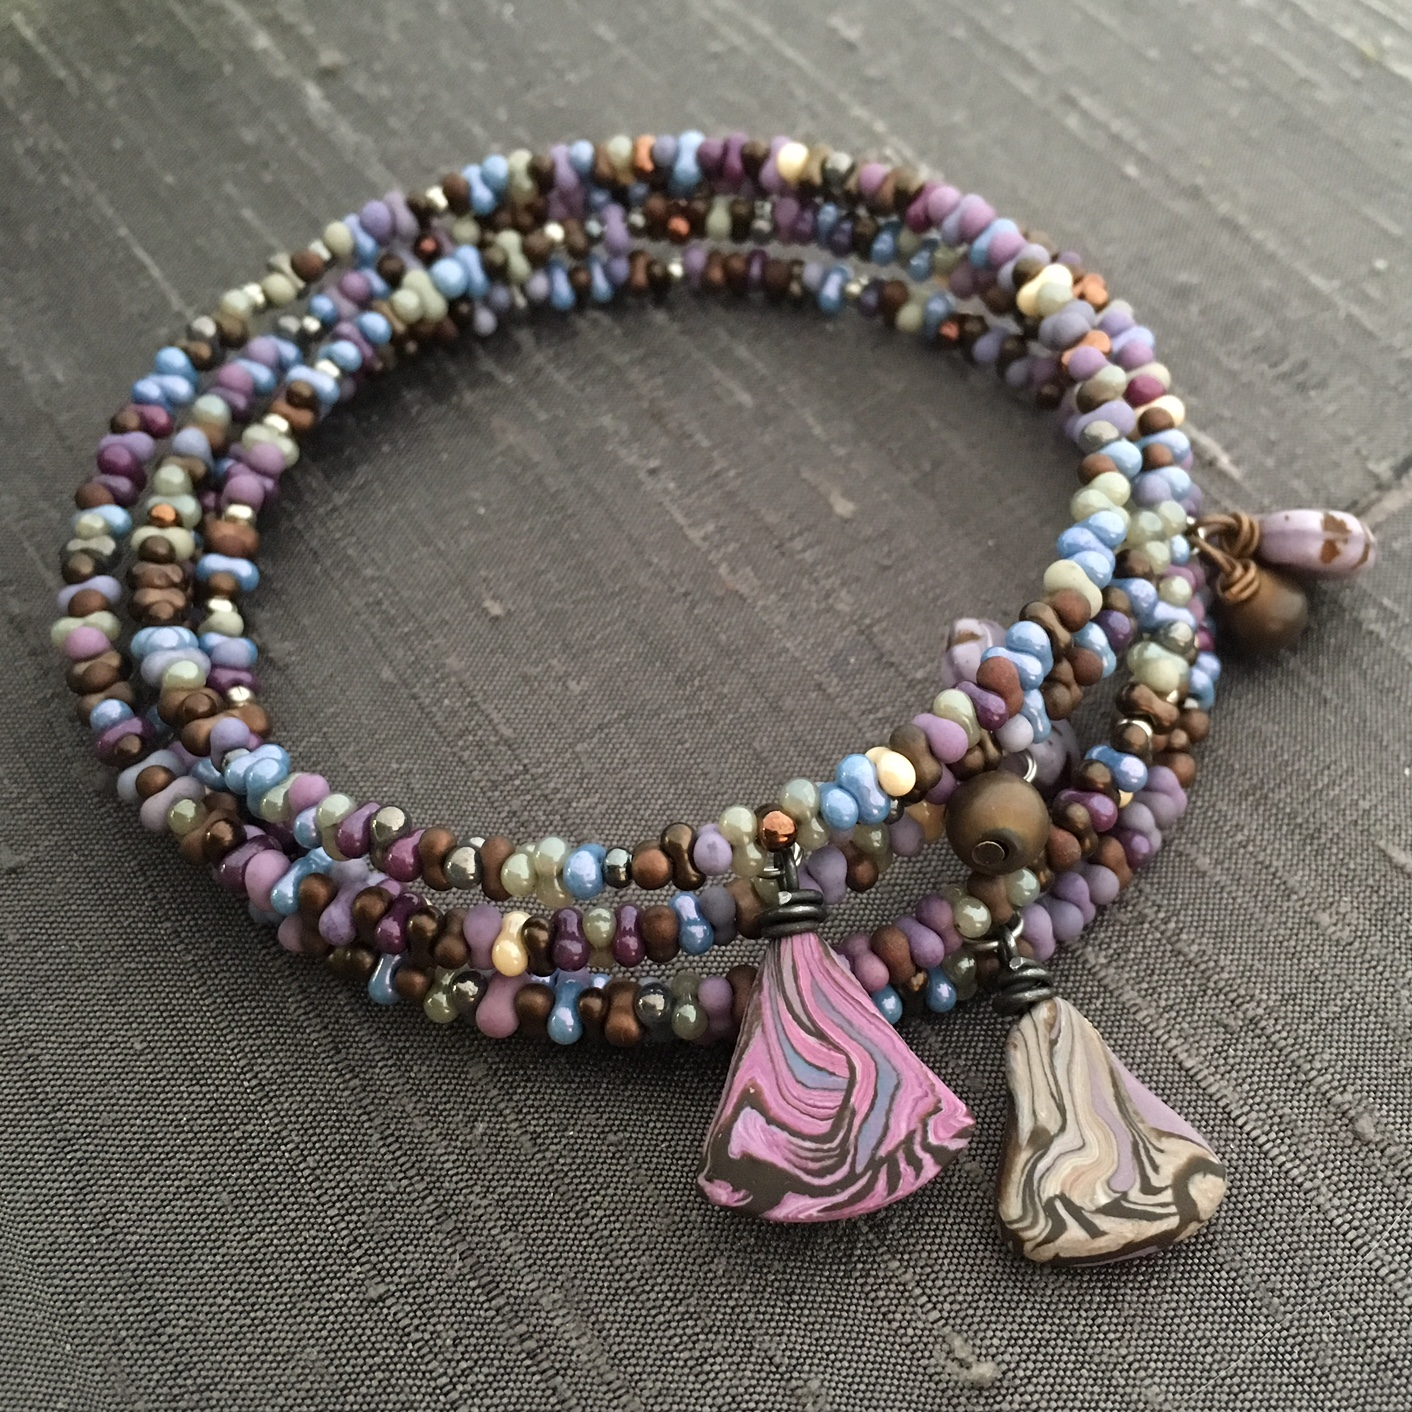 Humblebeads Blog: Bead Table Wednesday - Memory Wire and Bead ...